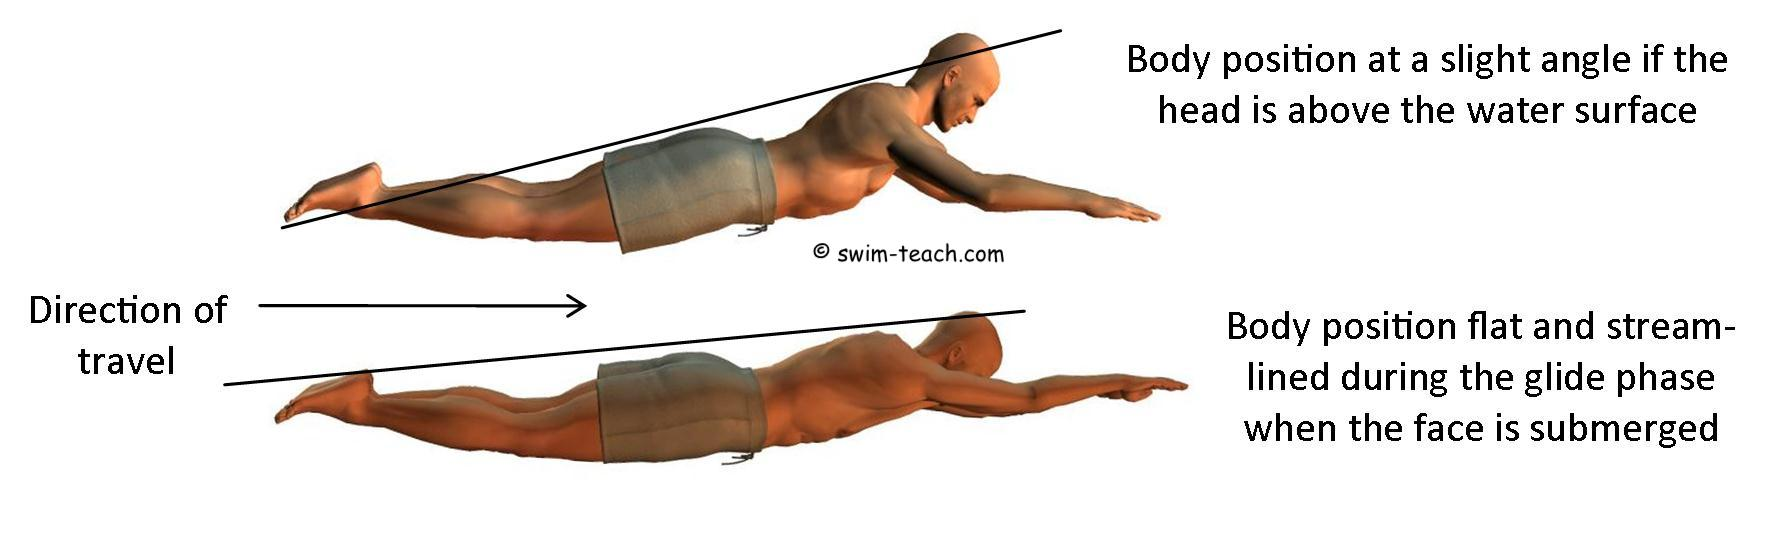 swimming position for breaststroke